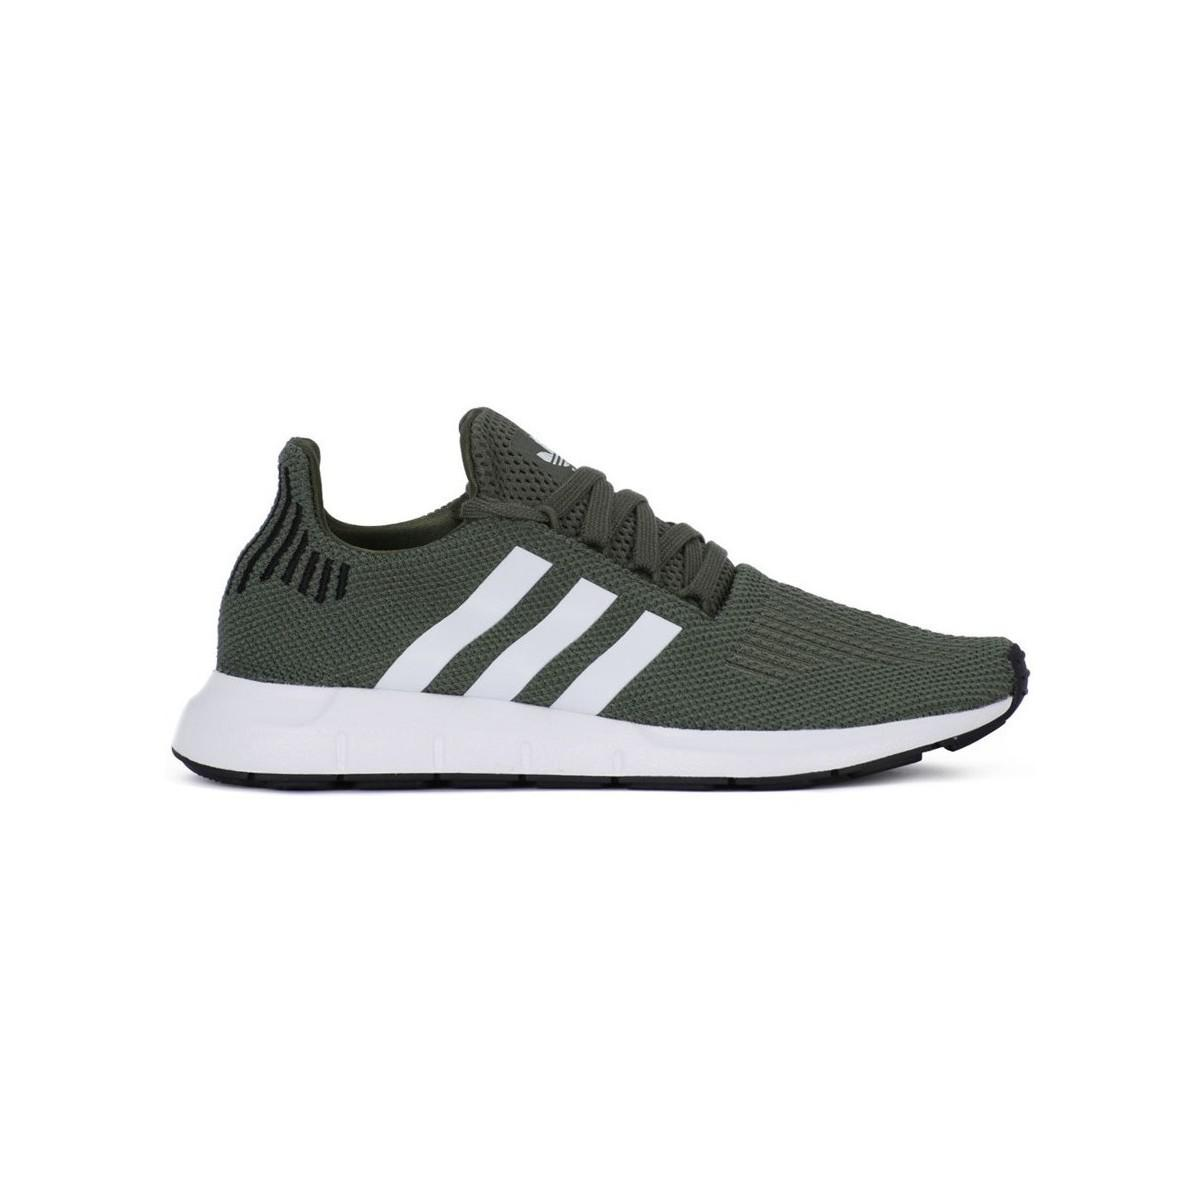 uk availability 147aa d5089 adidas. Swift Run W Mens Shoes (trainers) In Multicolour